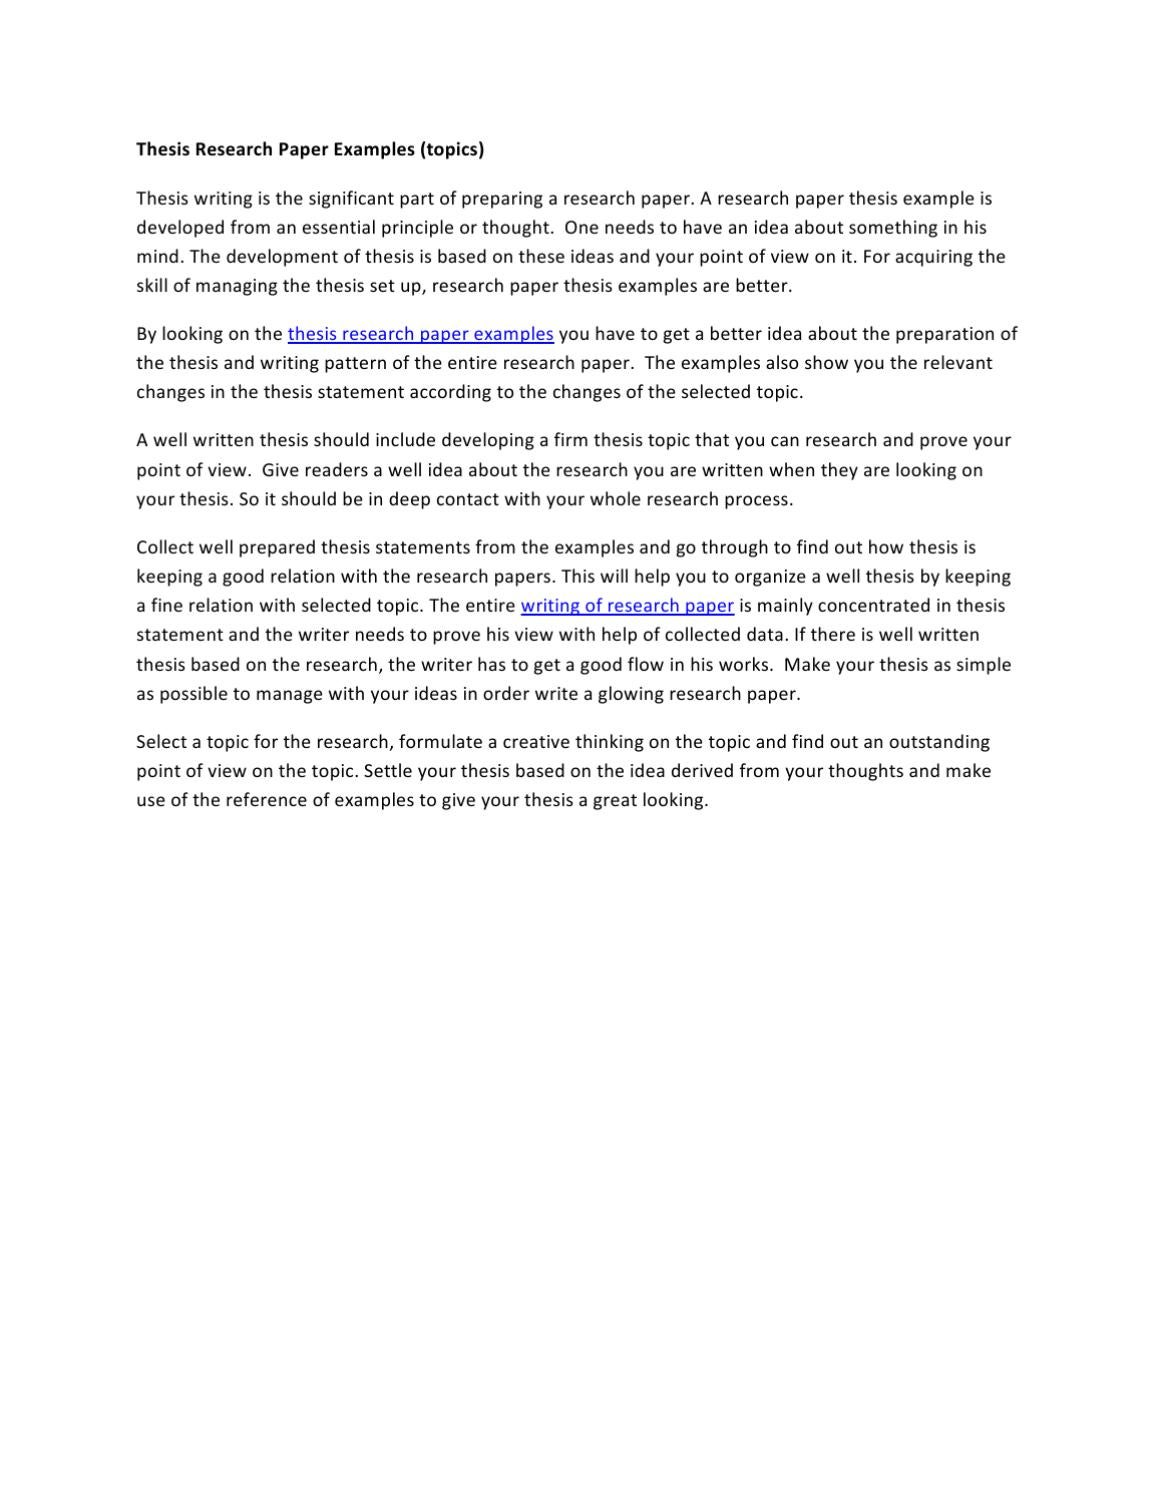 Thesis Research Paper Examples By Mathew Stuart Issuu